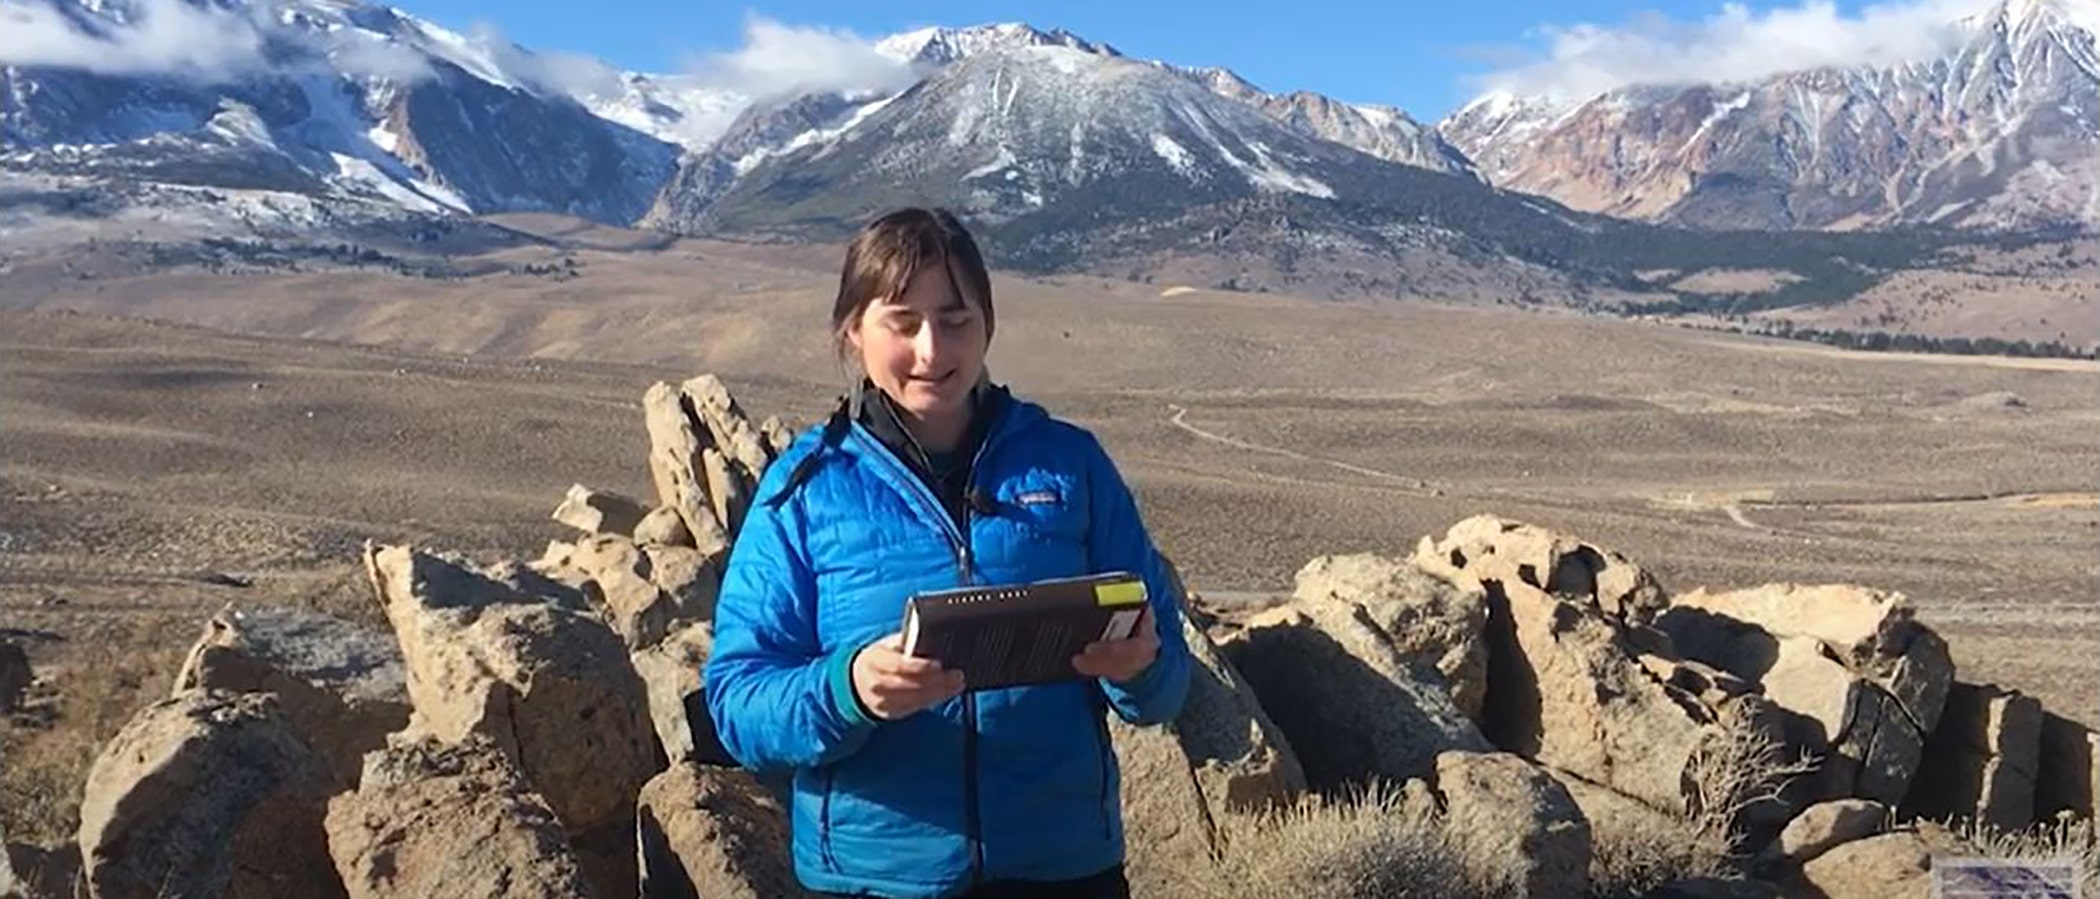 A woman with brown hair and a blue coat stands in front of a rocky vista looking out on brown fields and mountains. She is holding a book.